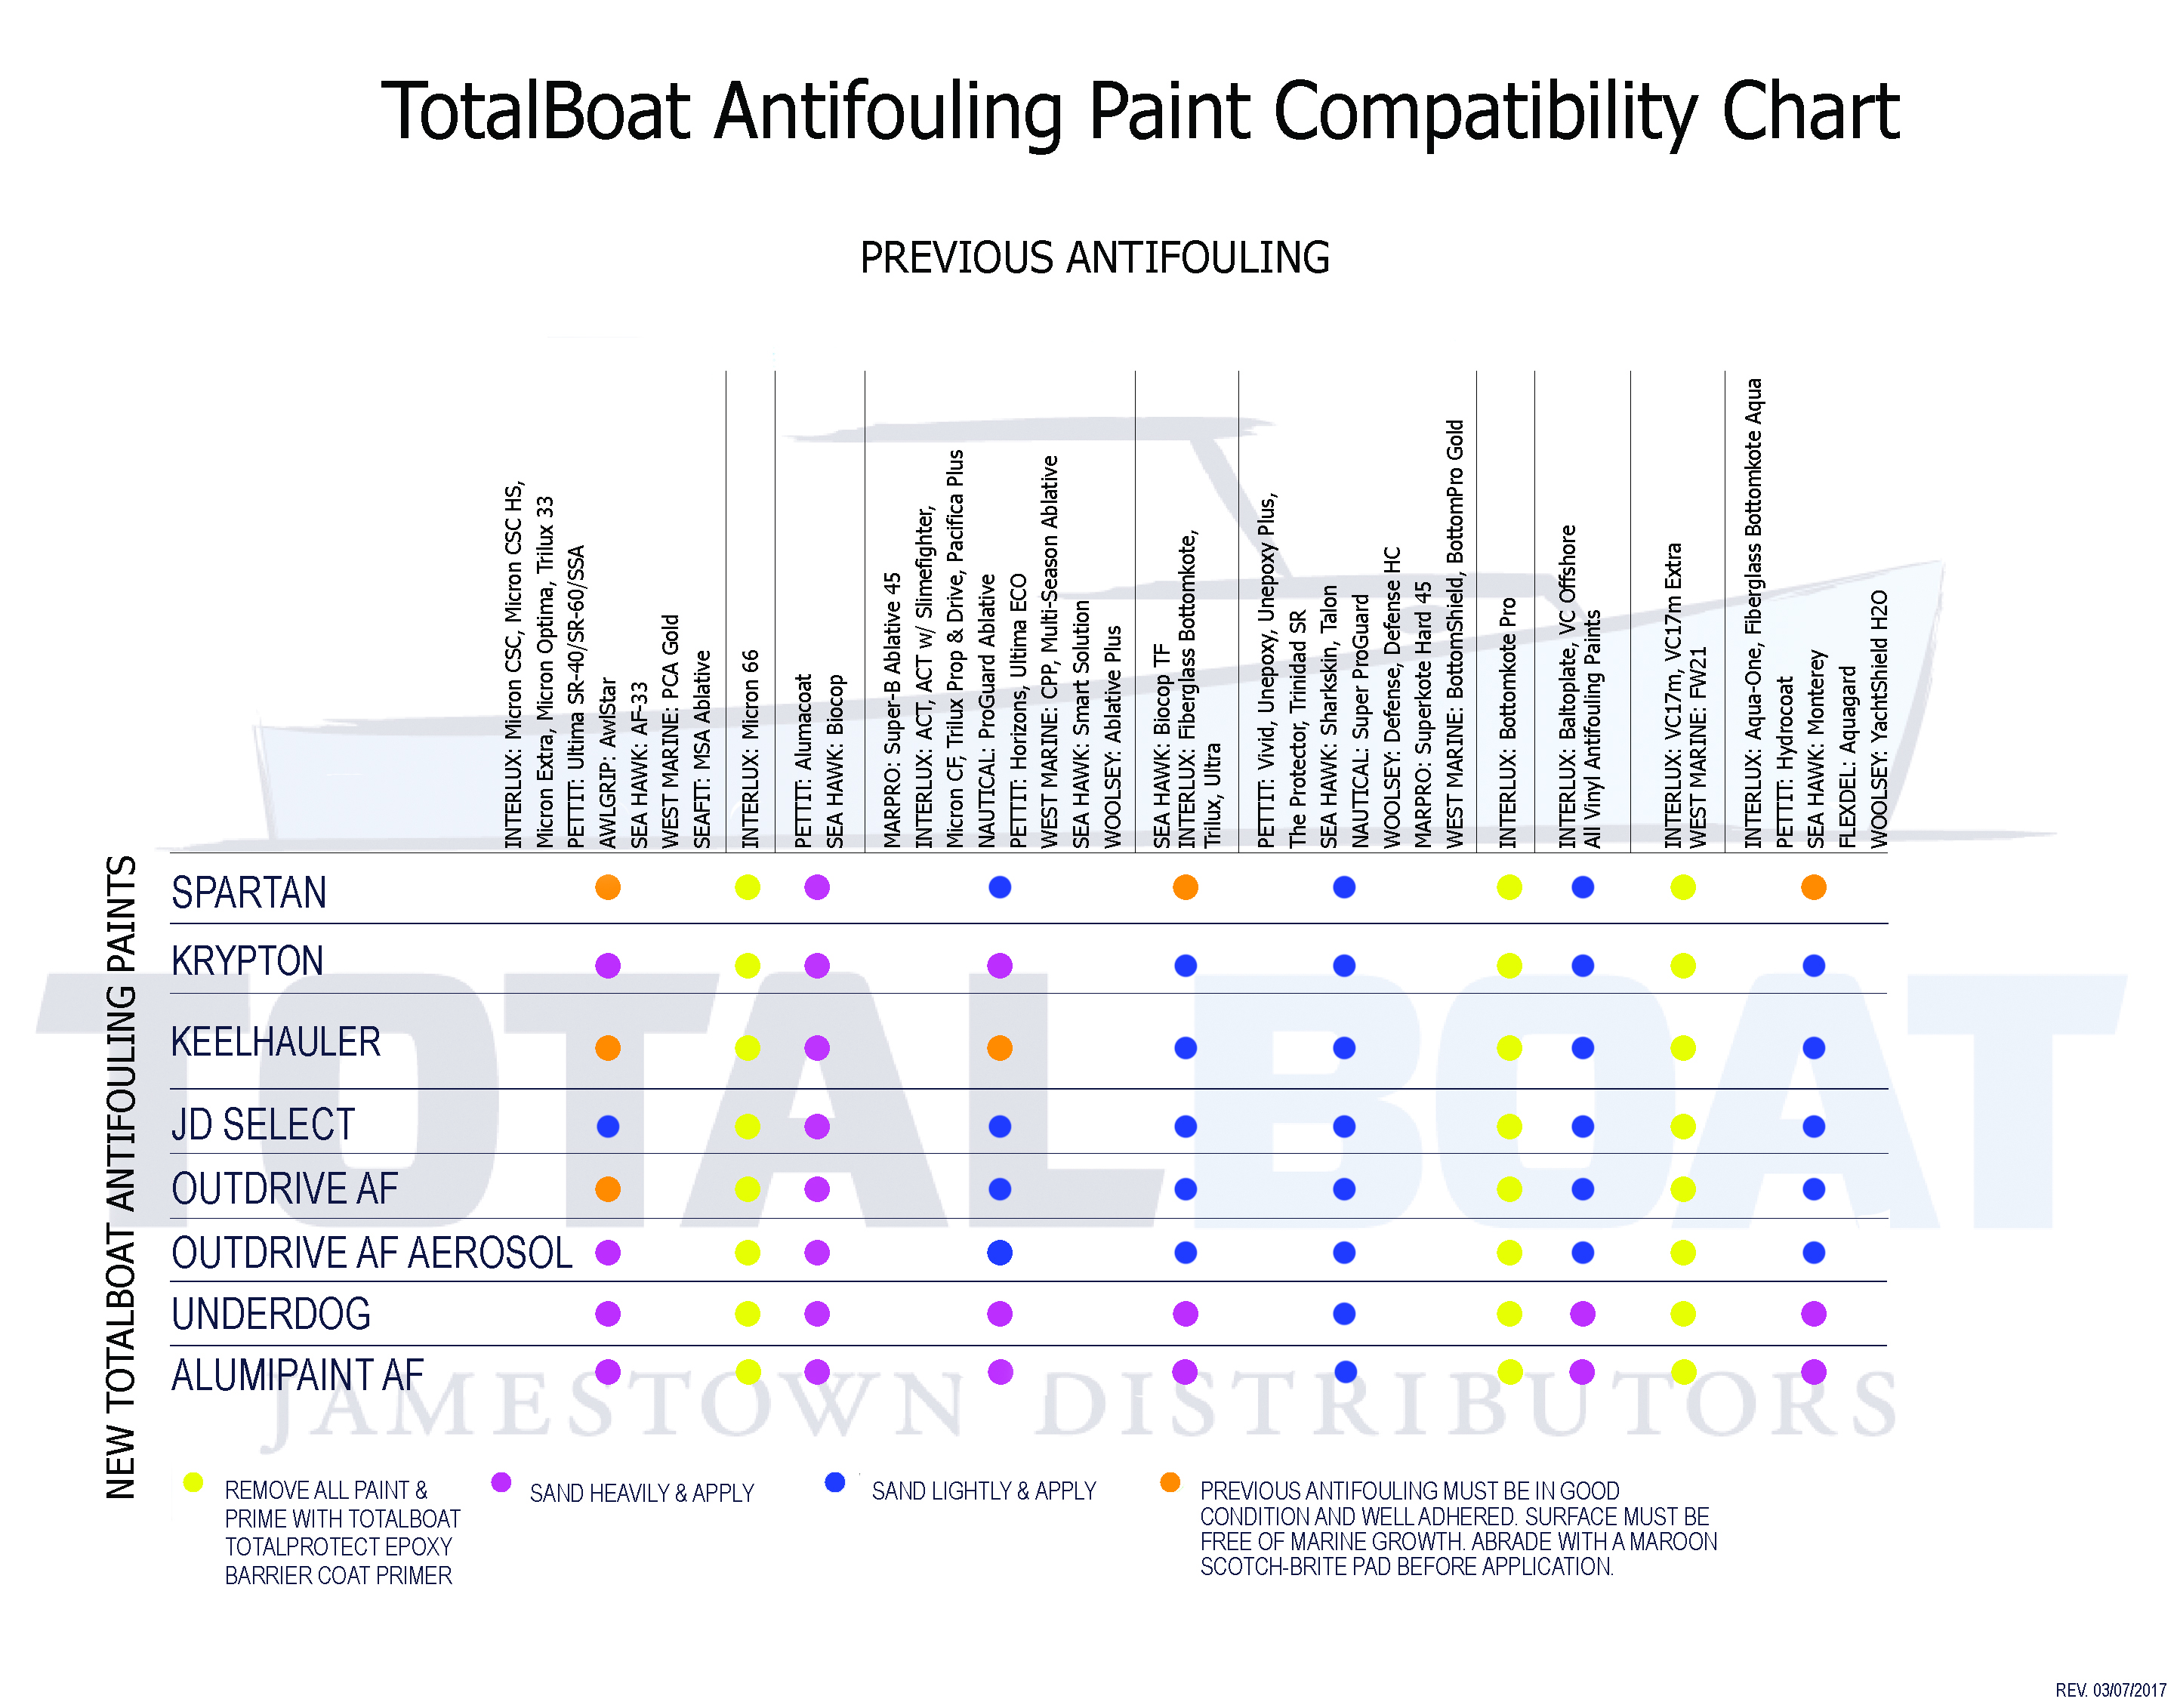 Bottom paint compatibility chart